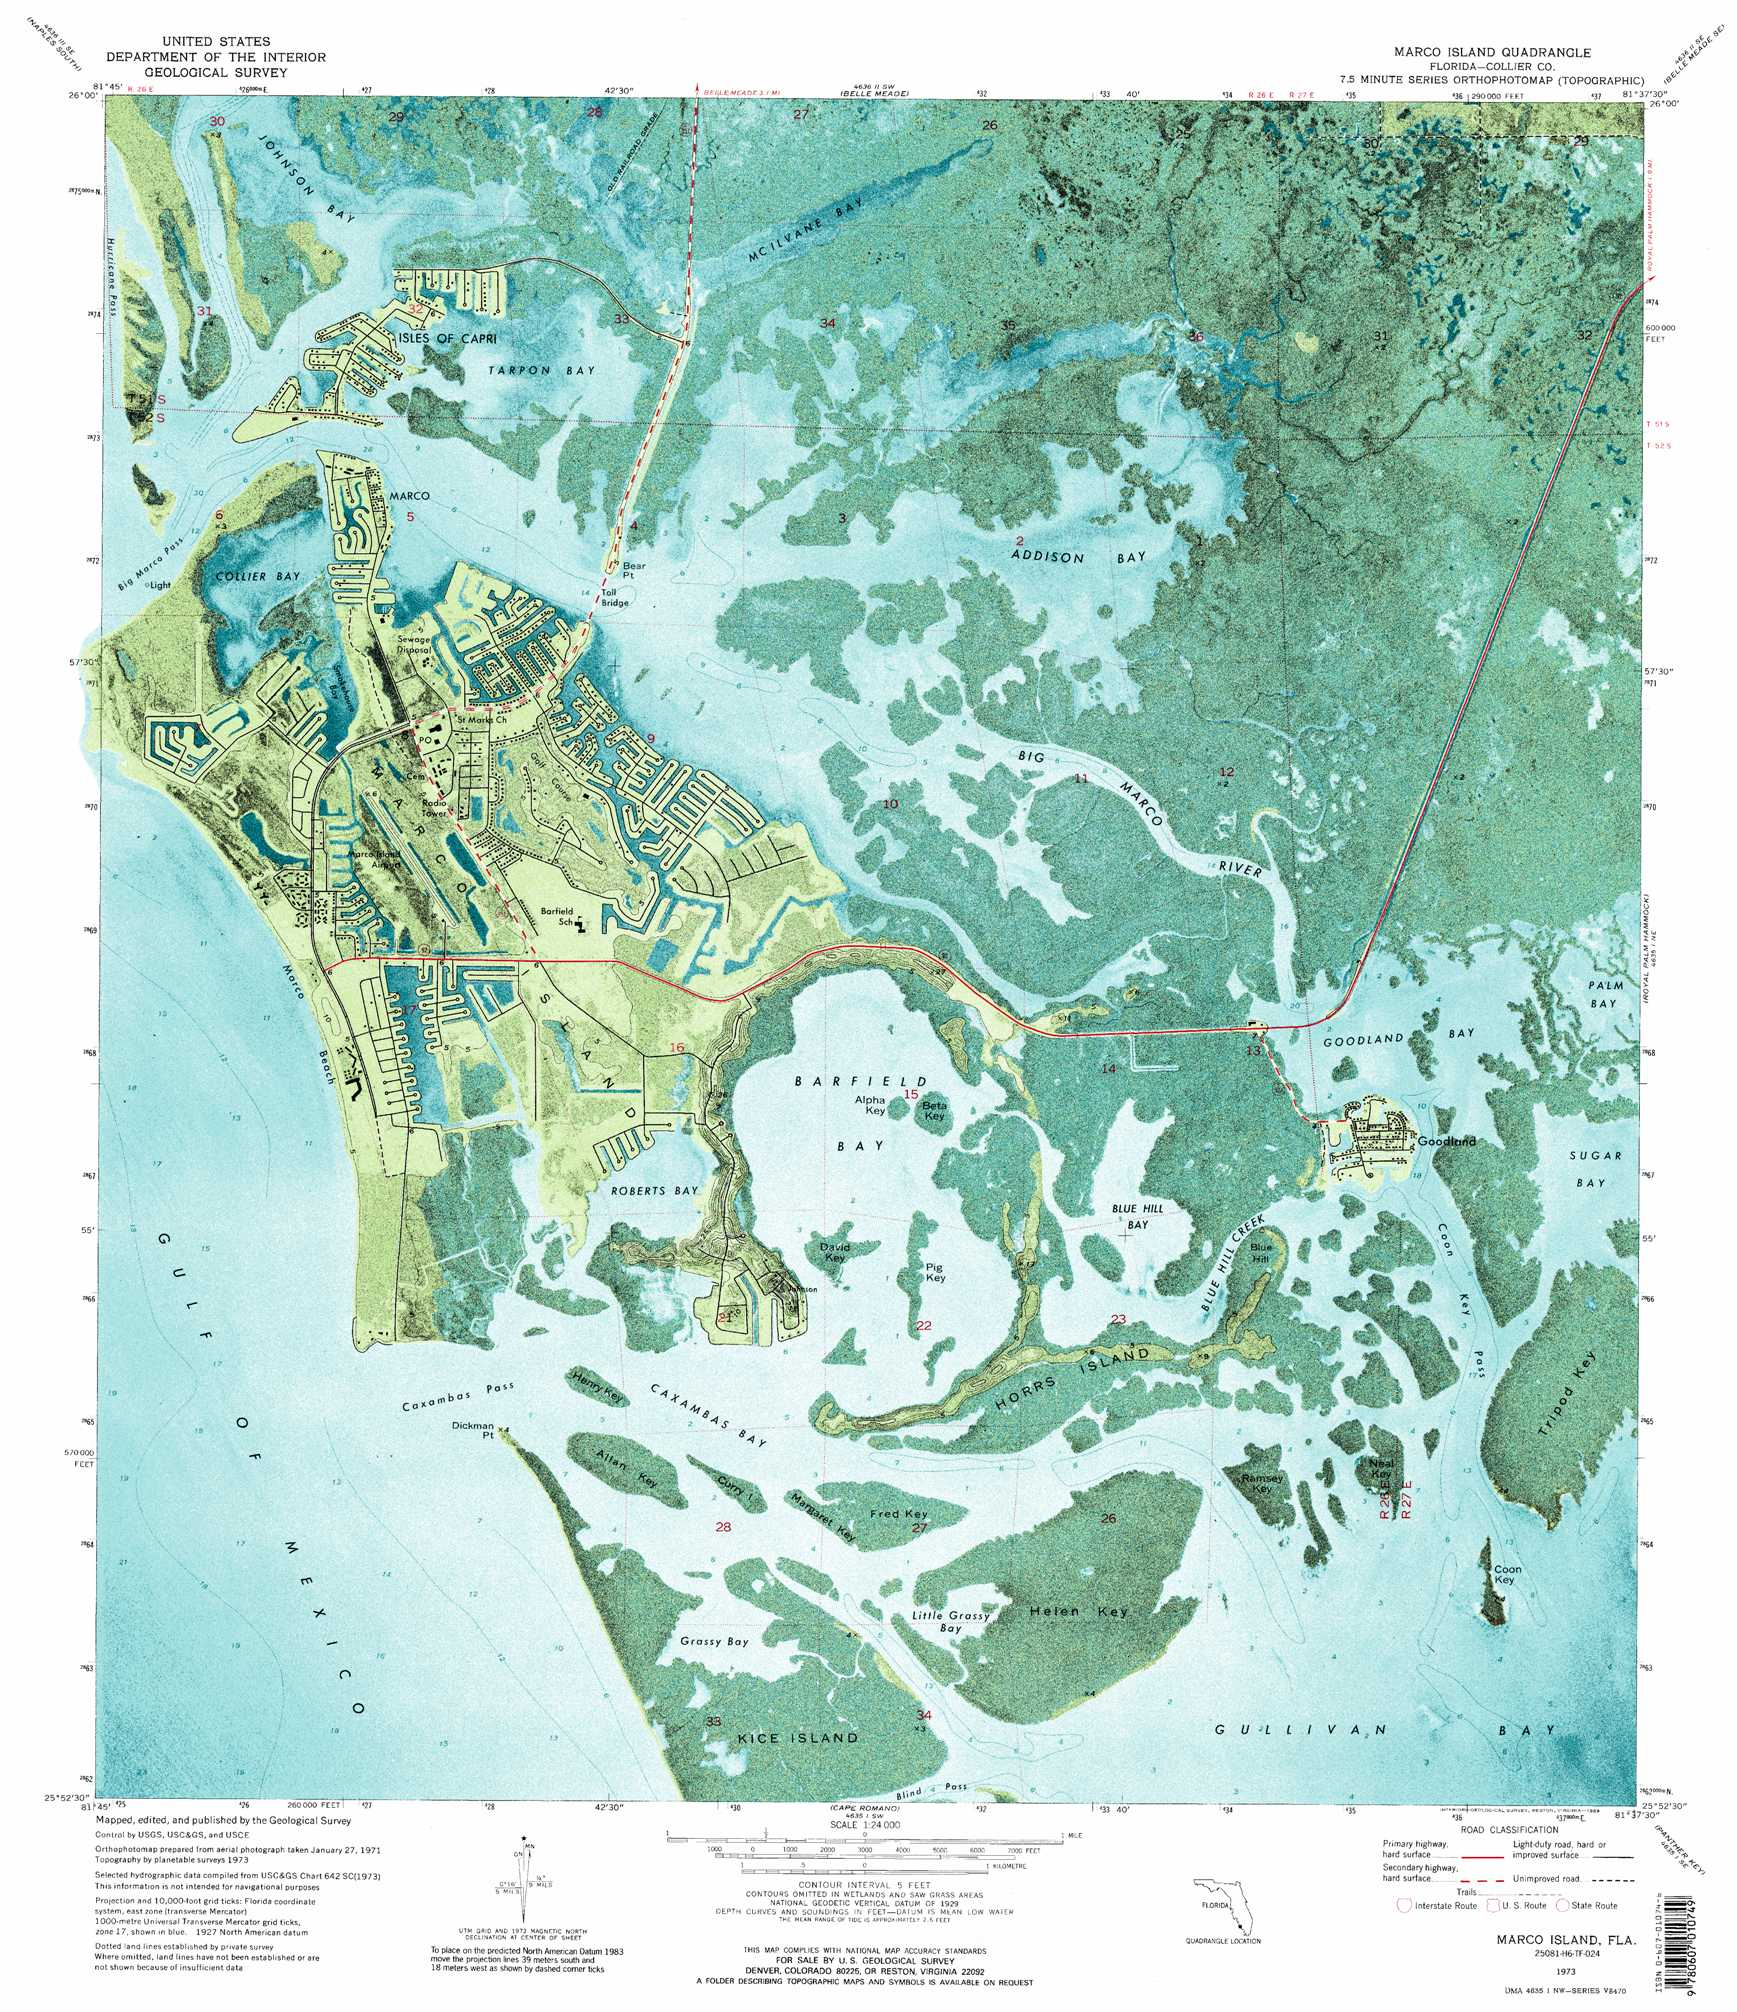 Marco Island Florida Map From Yellowmaps 9 - Ameliabd - Marco Island Florida Map